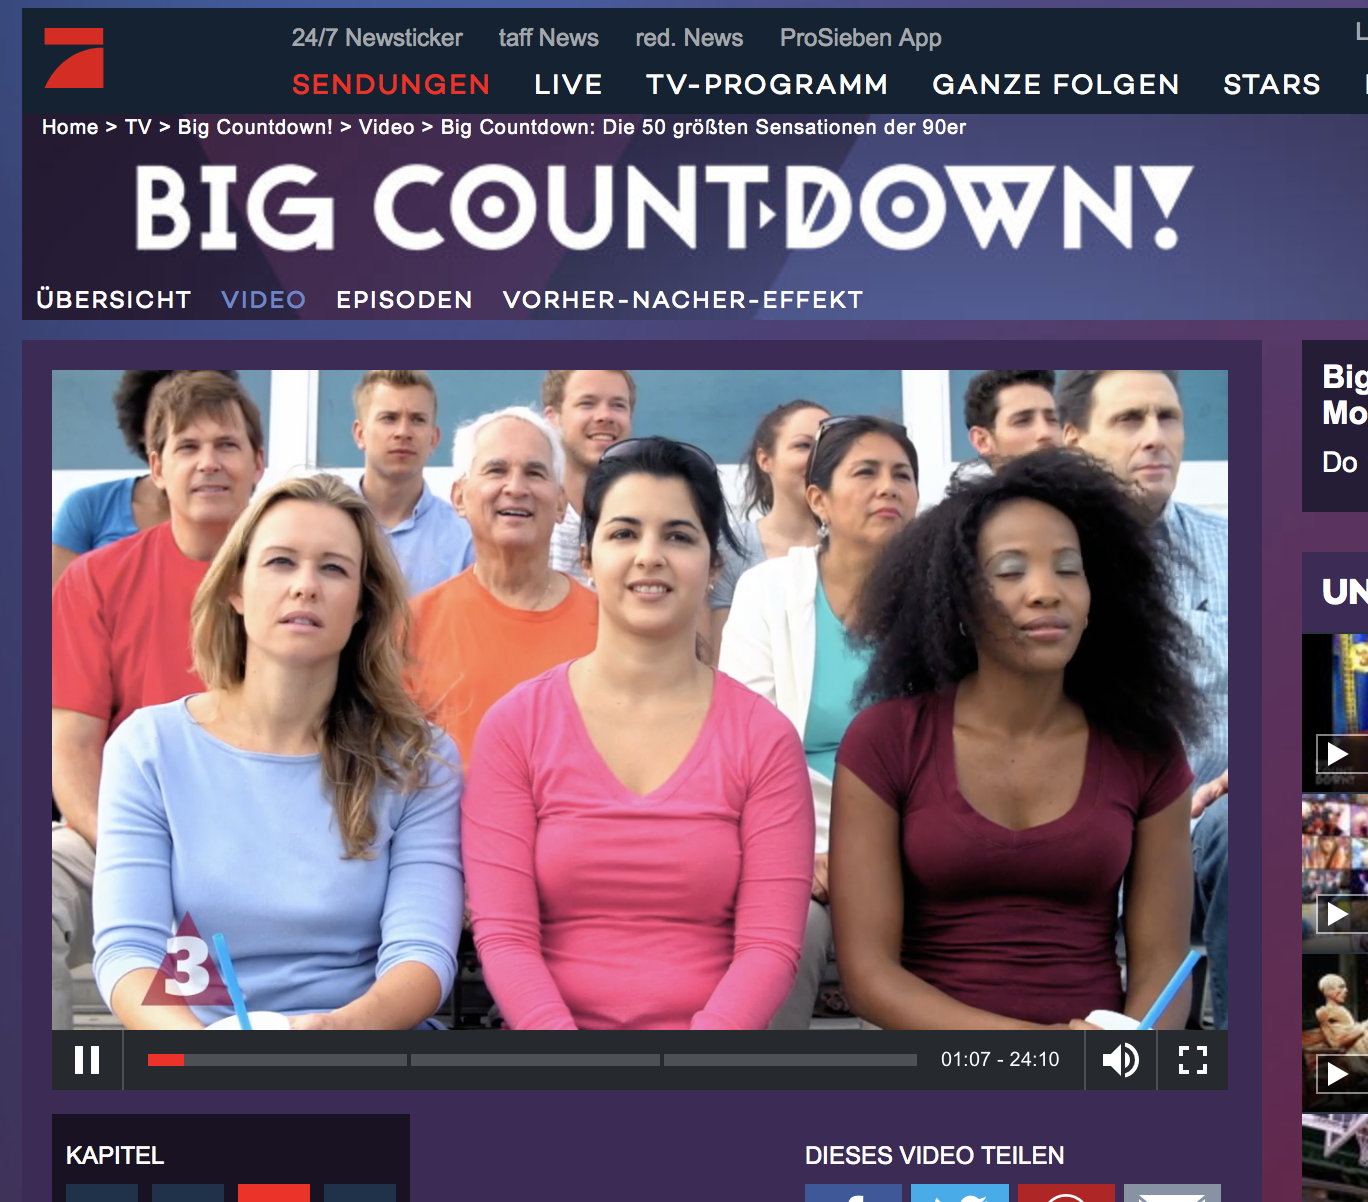 The Big Countdown - German TV Show